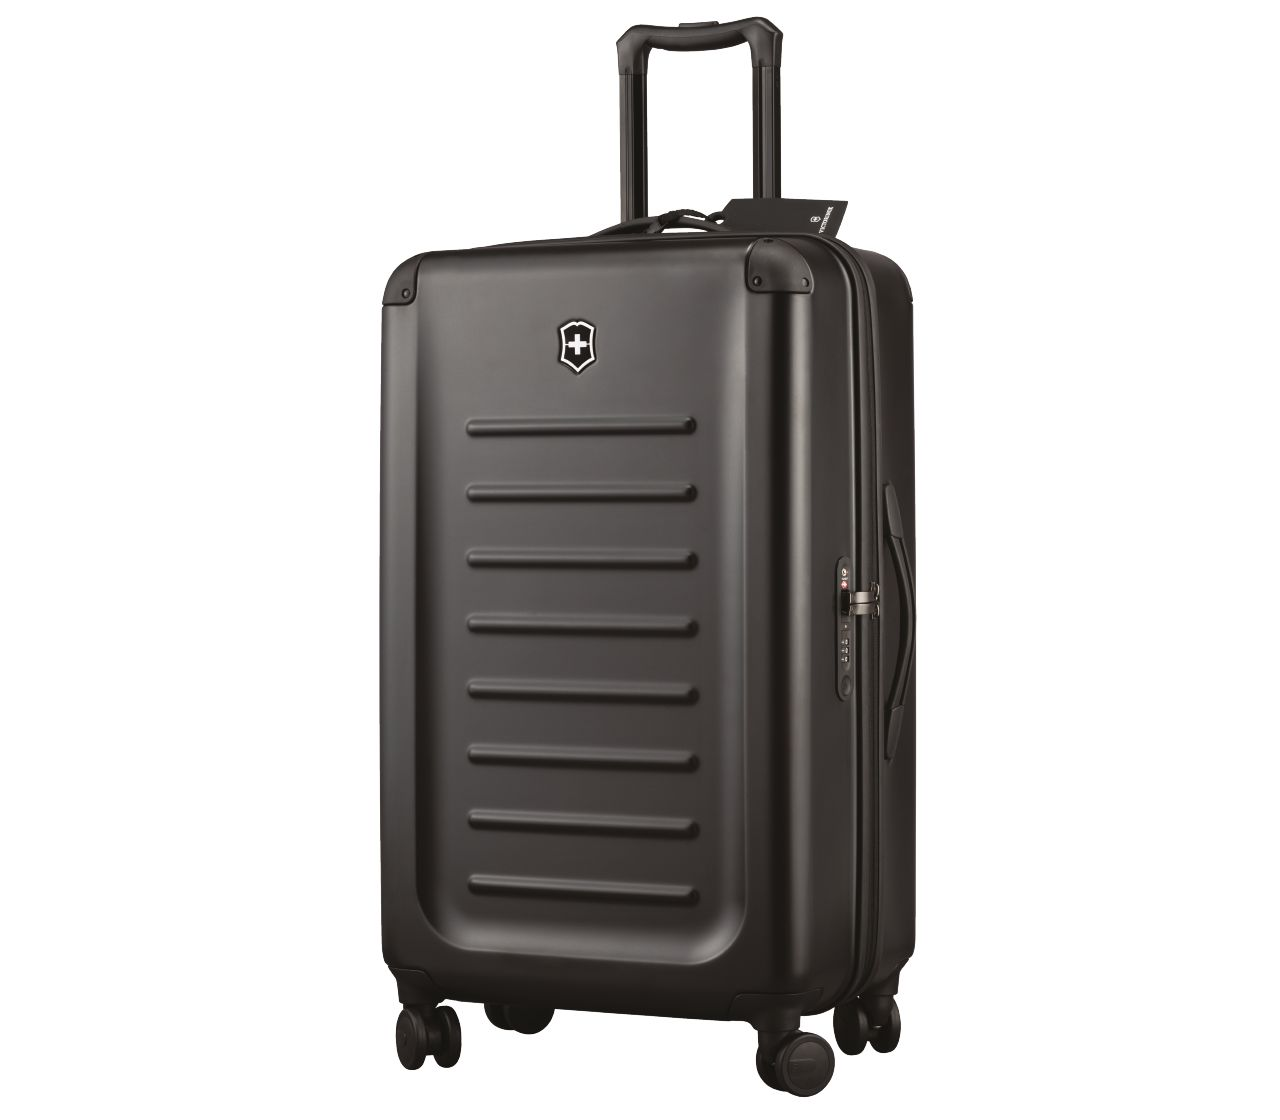 Spectra 2.0 Large Case-31318501